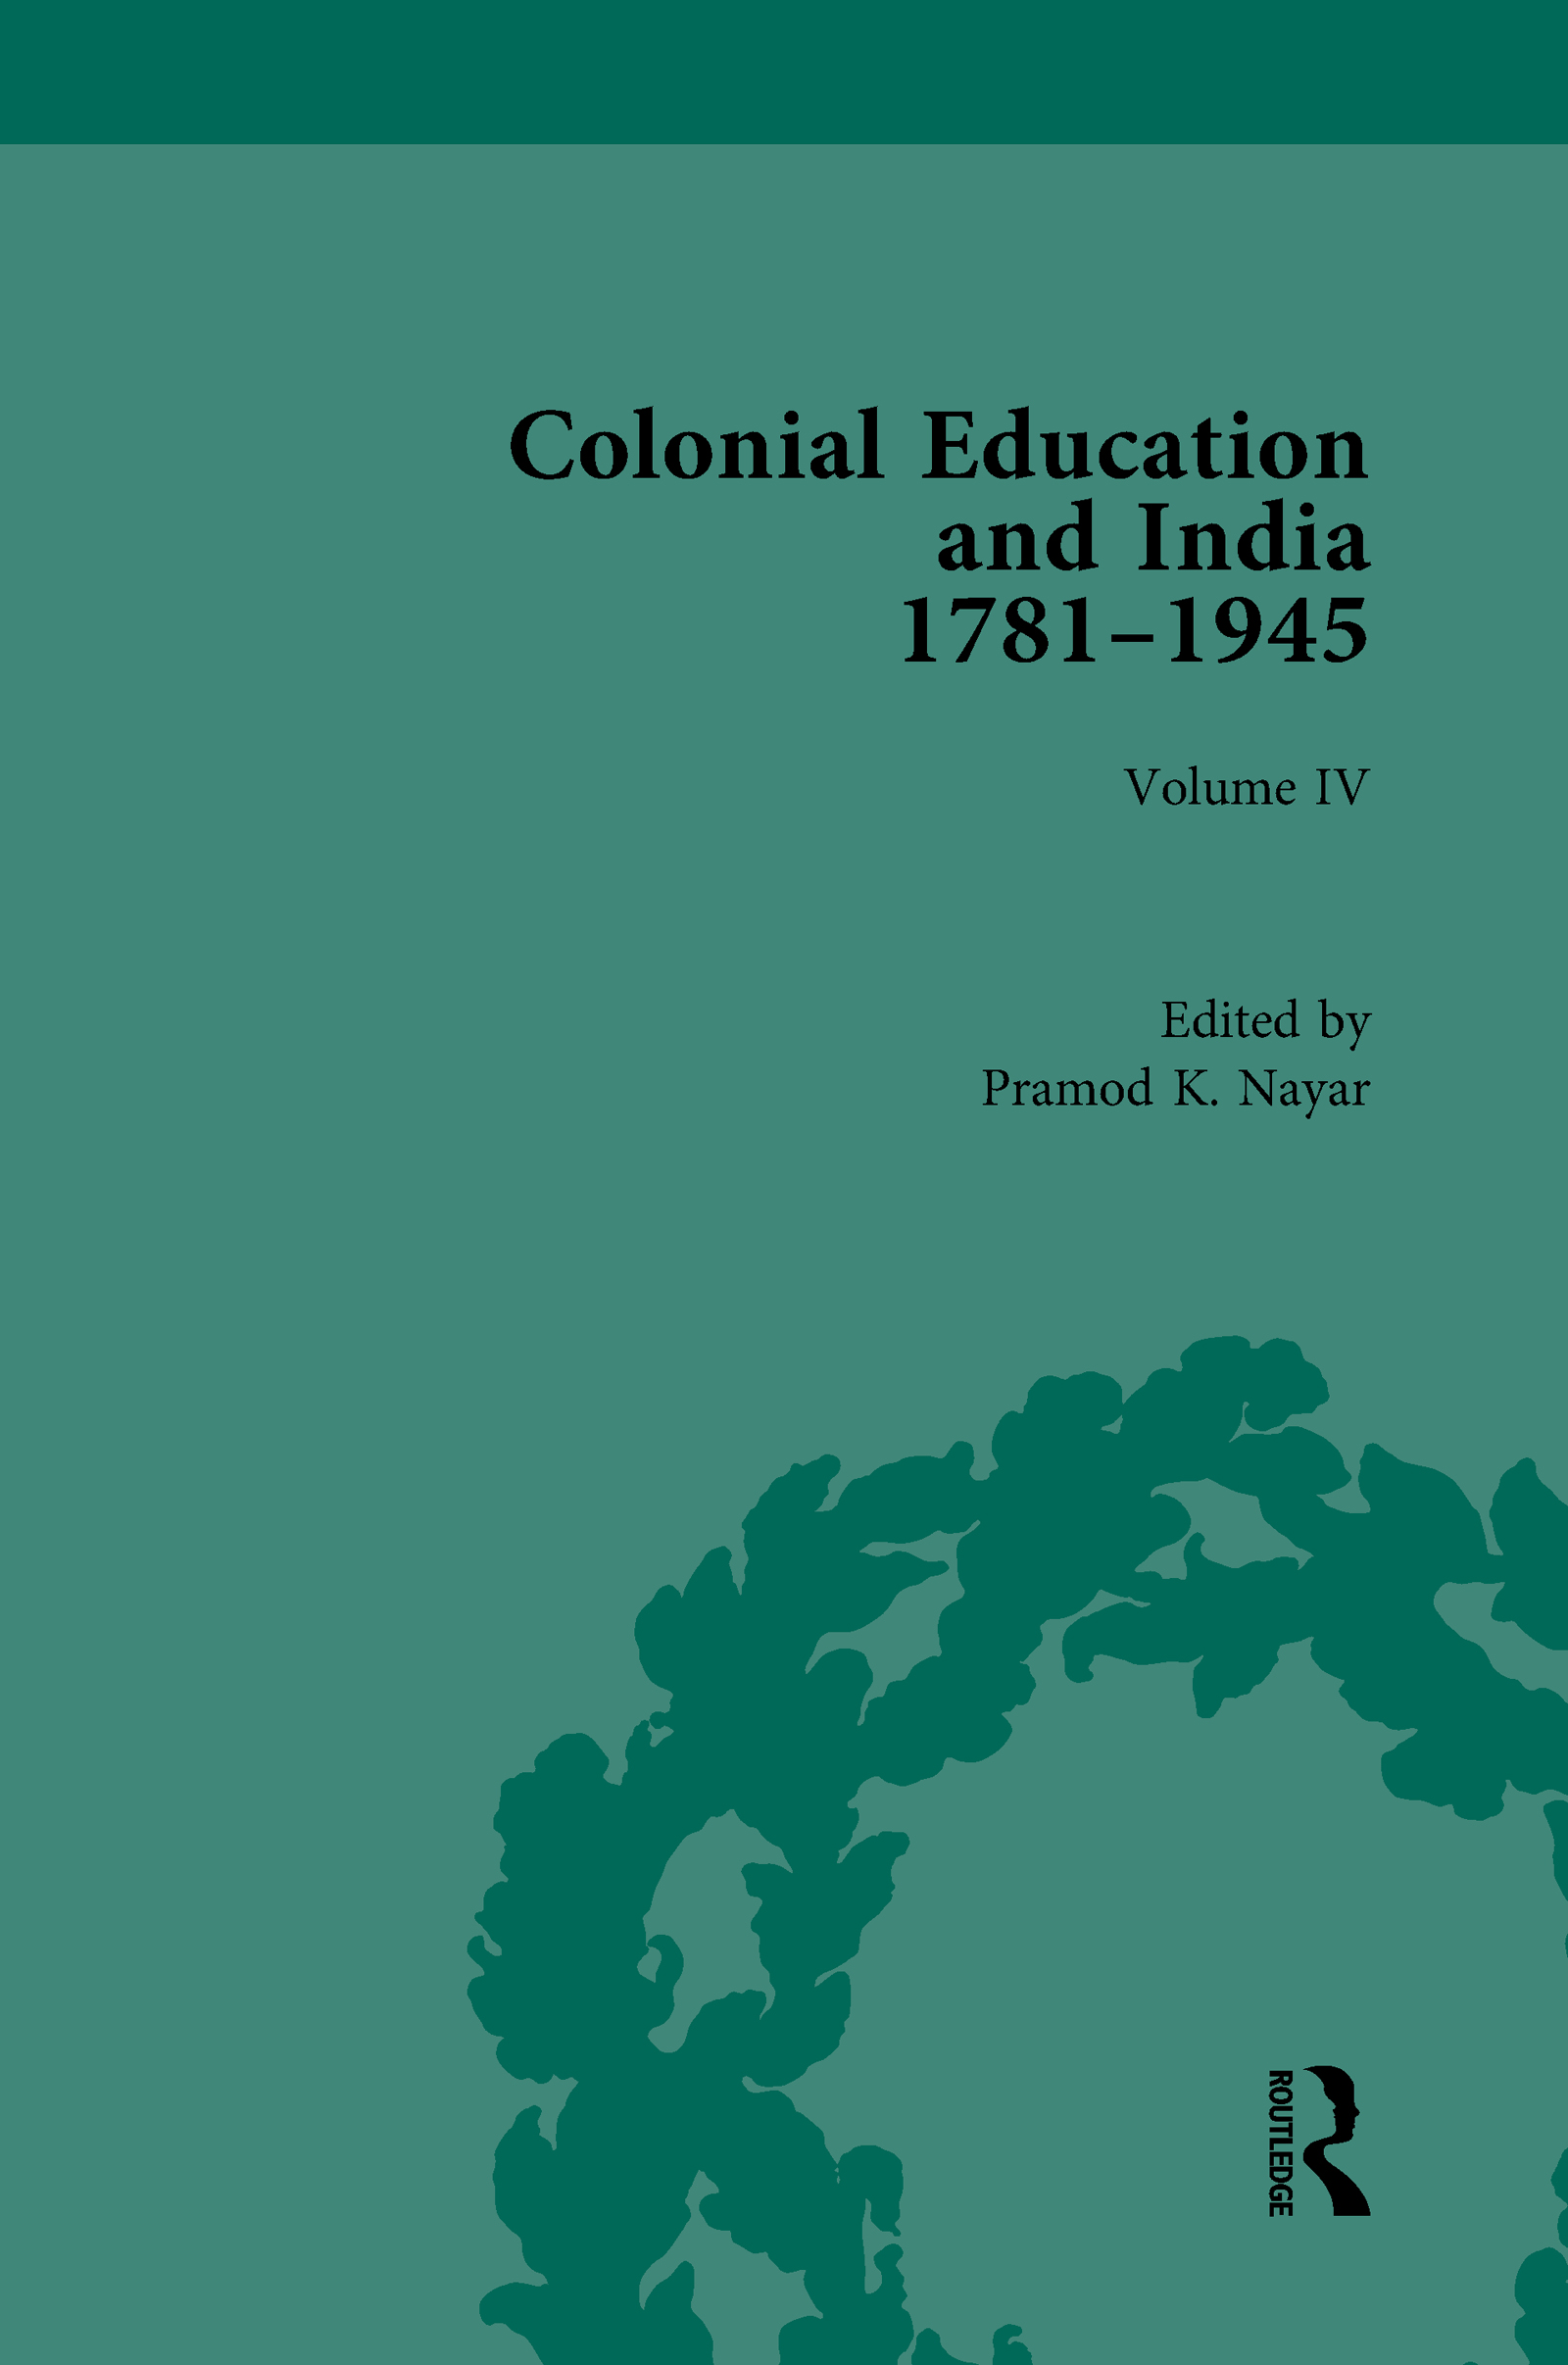 Colonial Education and India 1781-1945: Volume IV book cover